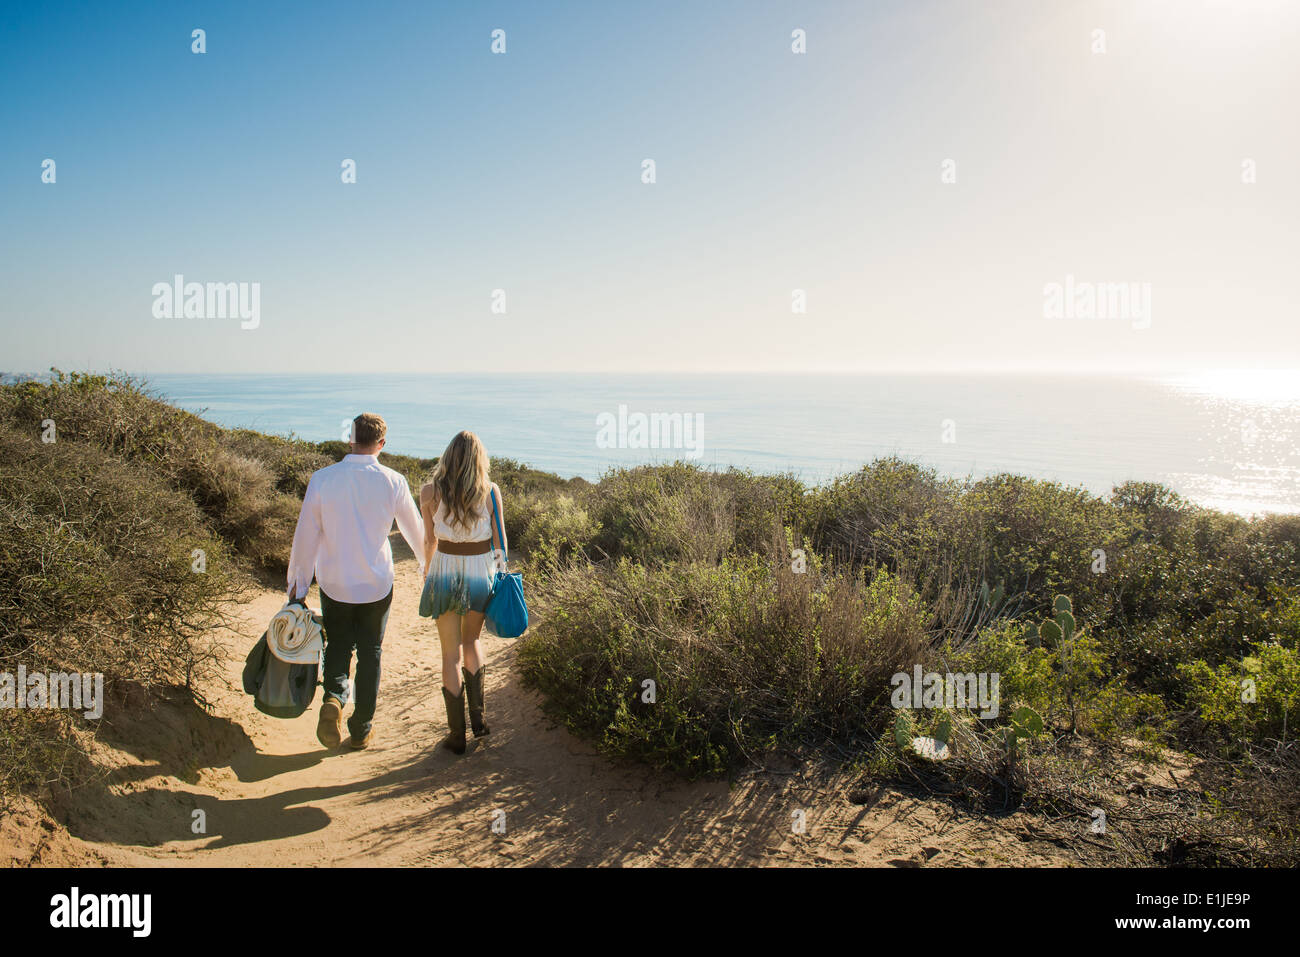 Romantic young couple strolling on coastal path, Torrey Pines, San Diego, California, USA - Stock Image